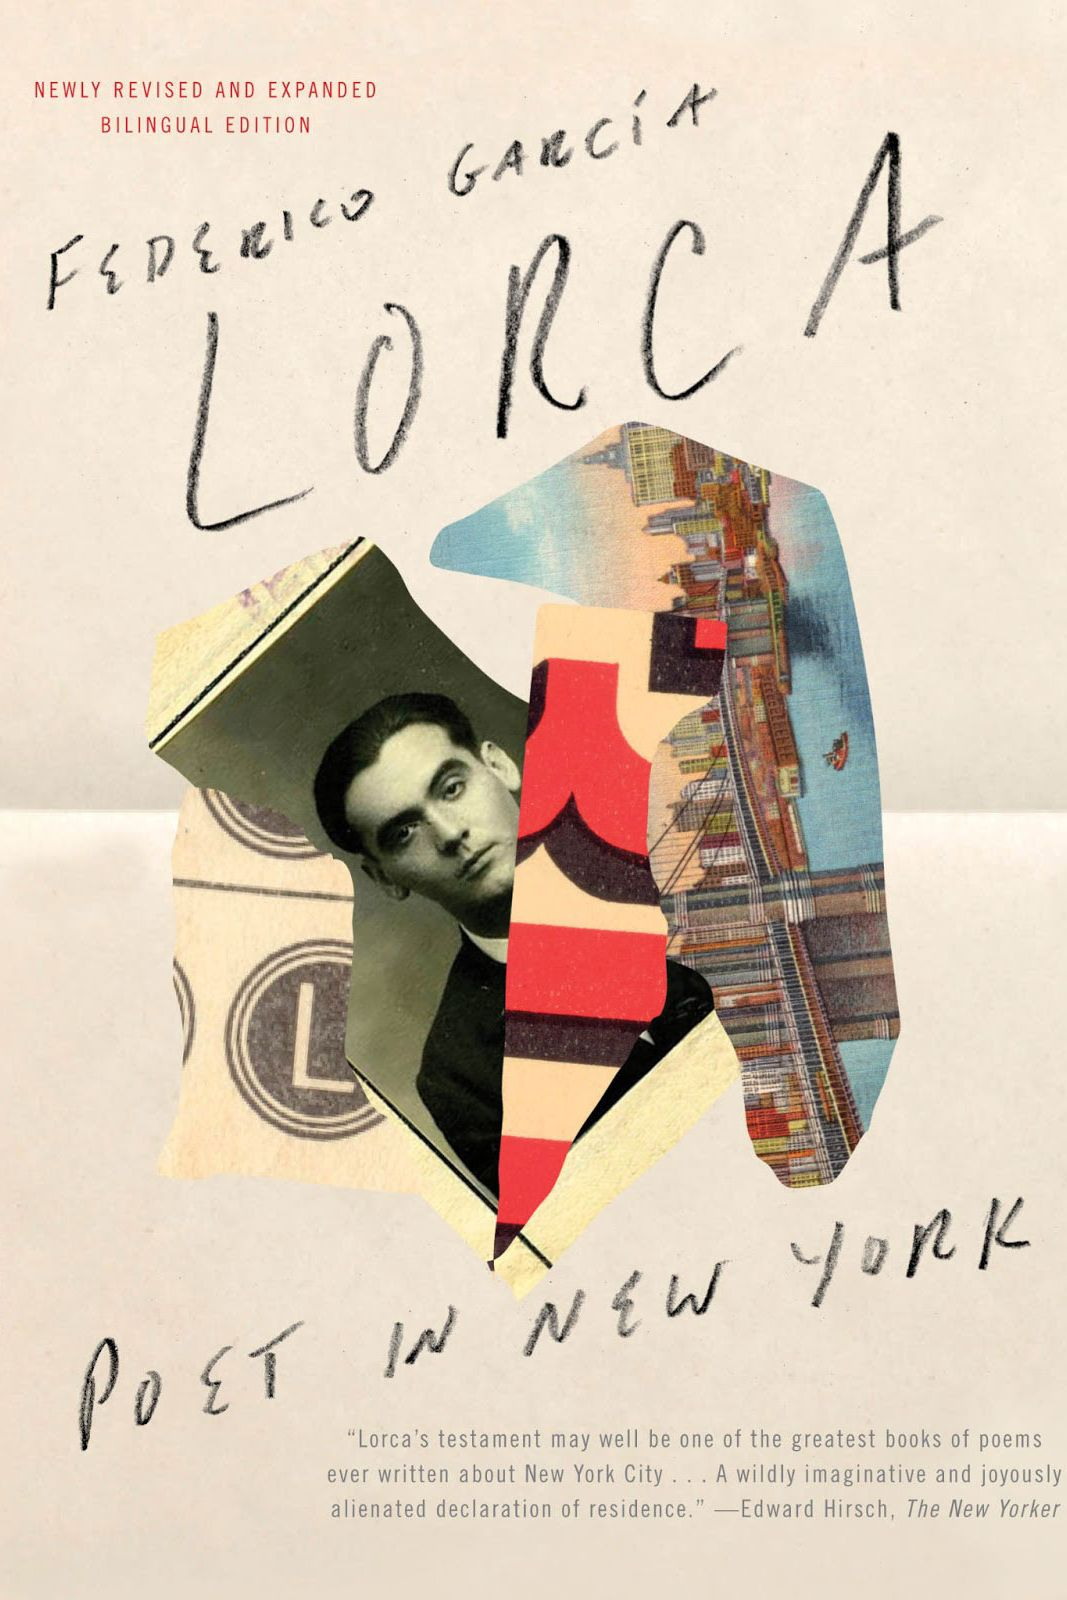 Poet in New York by Federico García Lorca